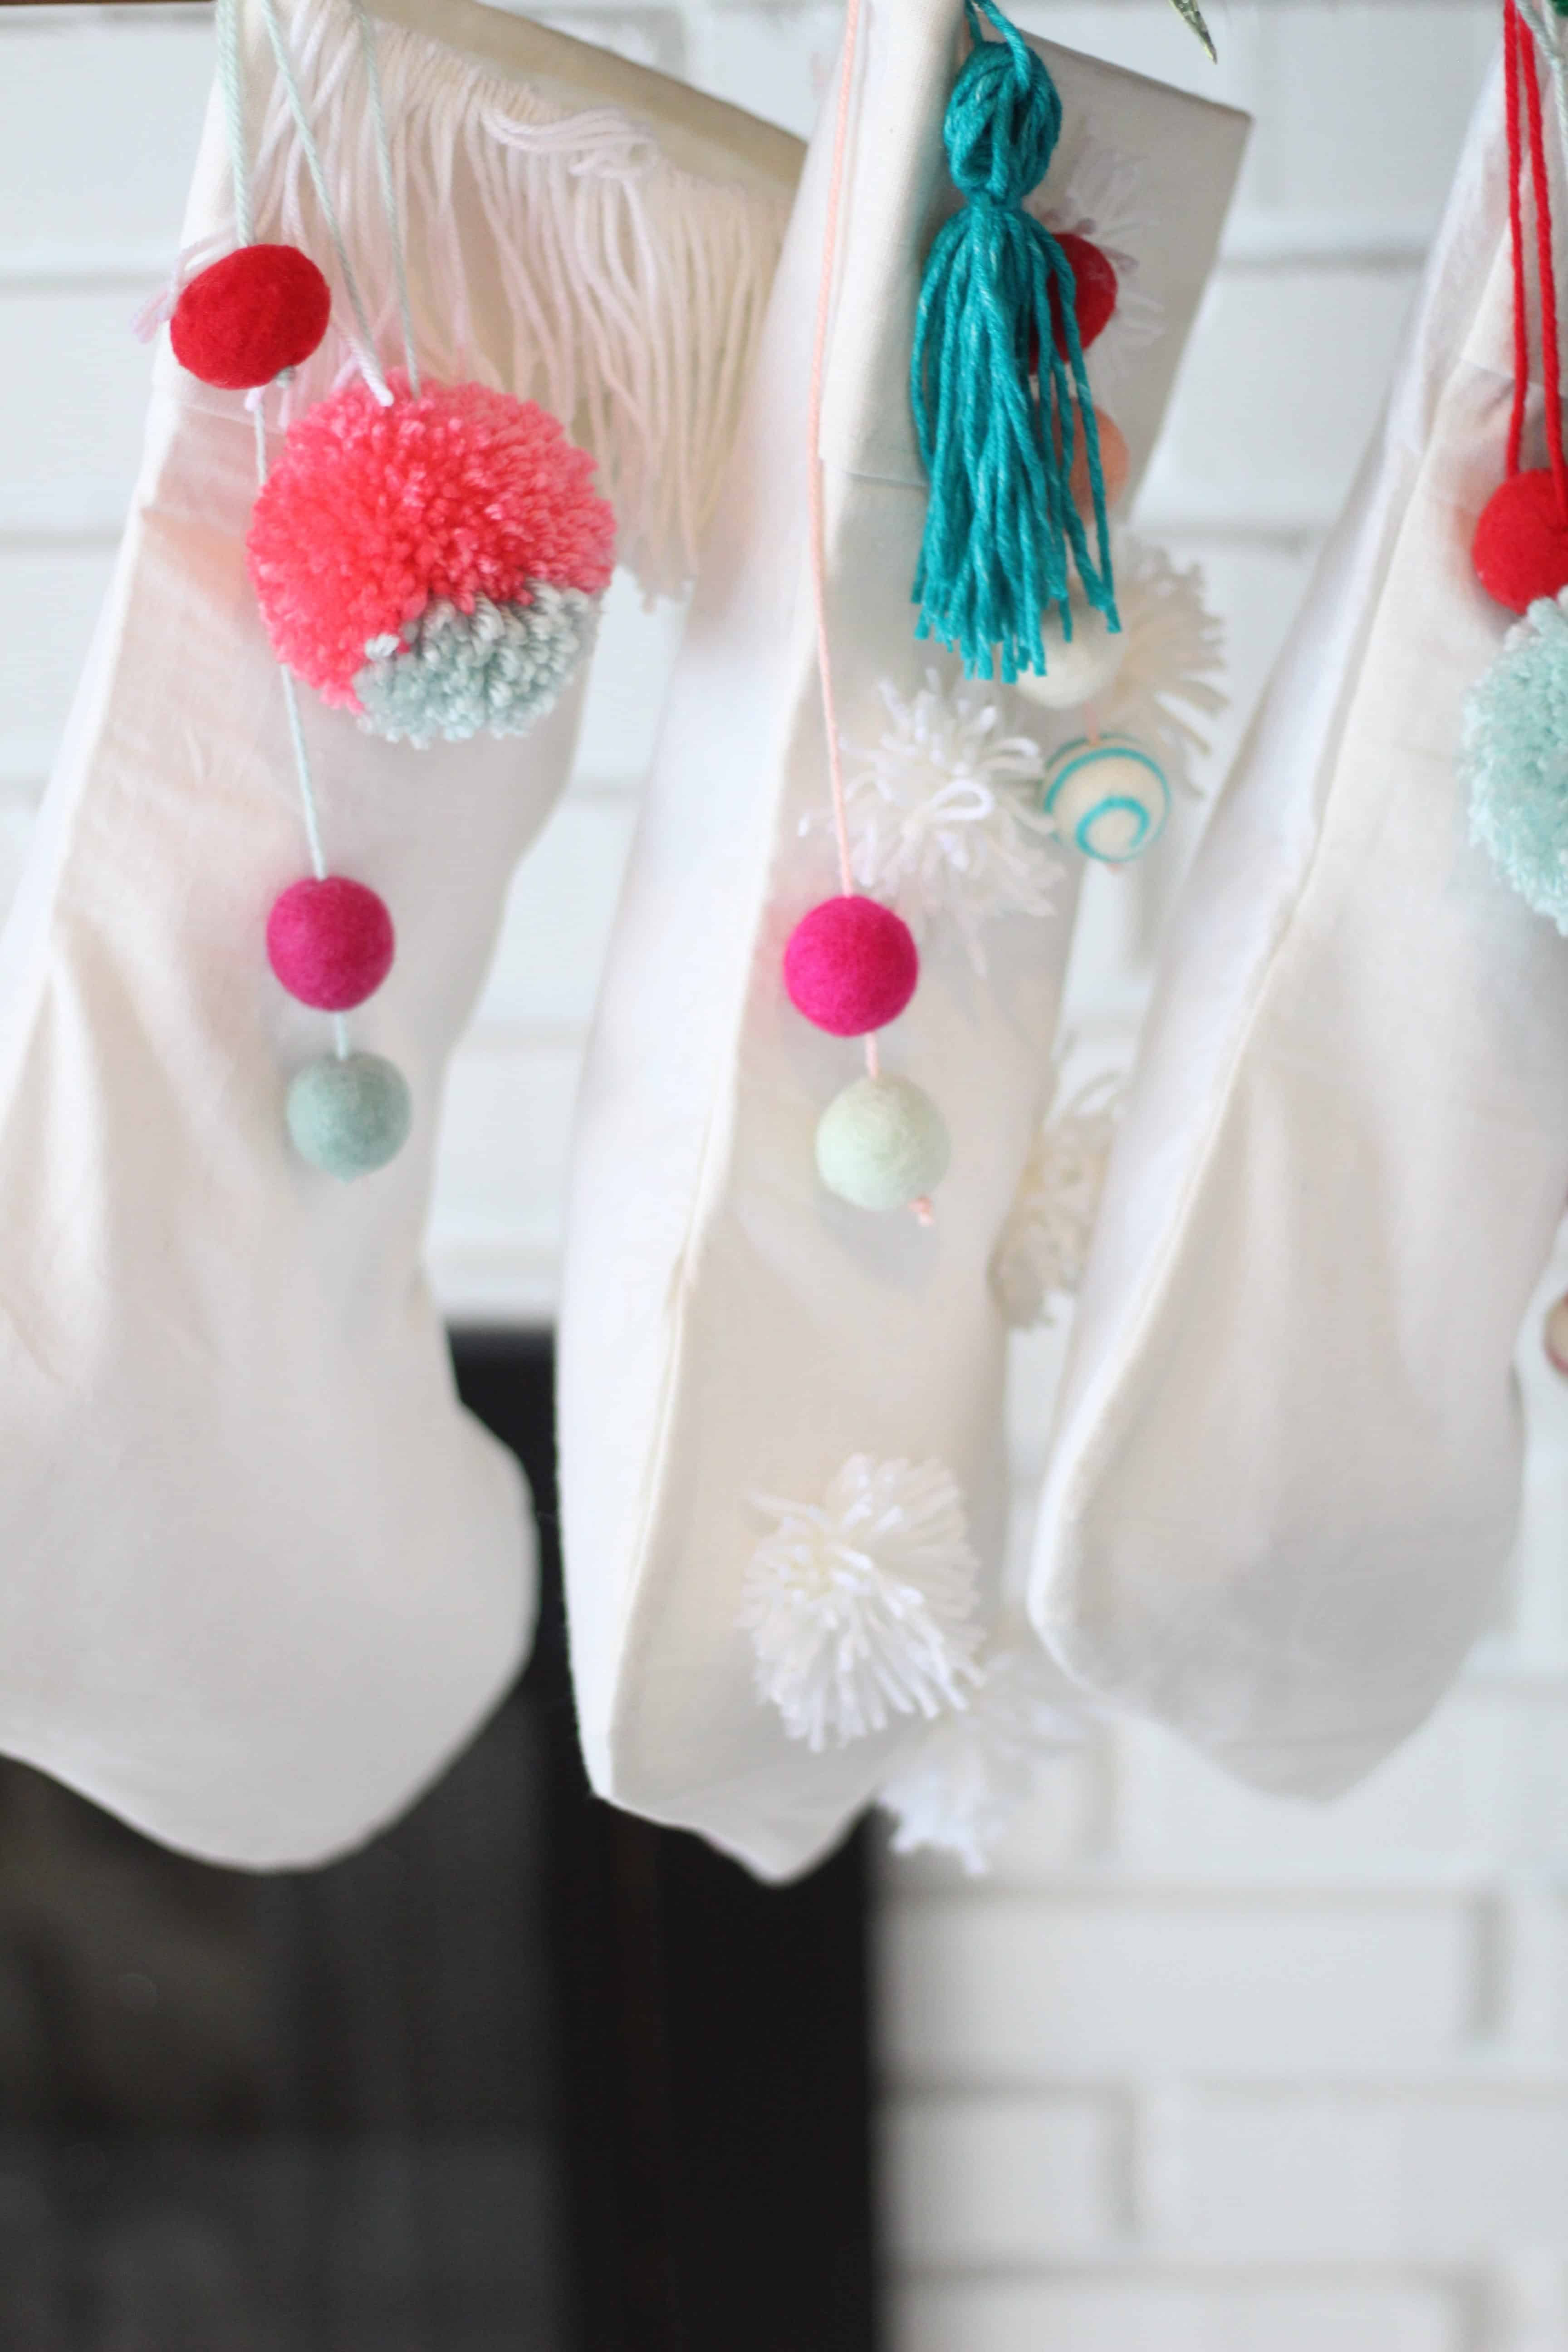 DIY Pom Pom Stockings